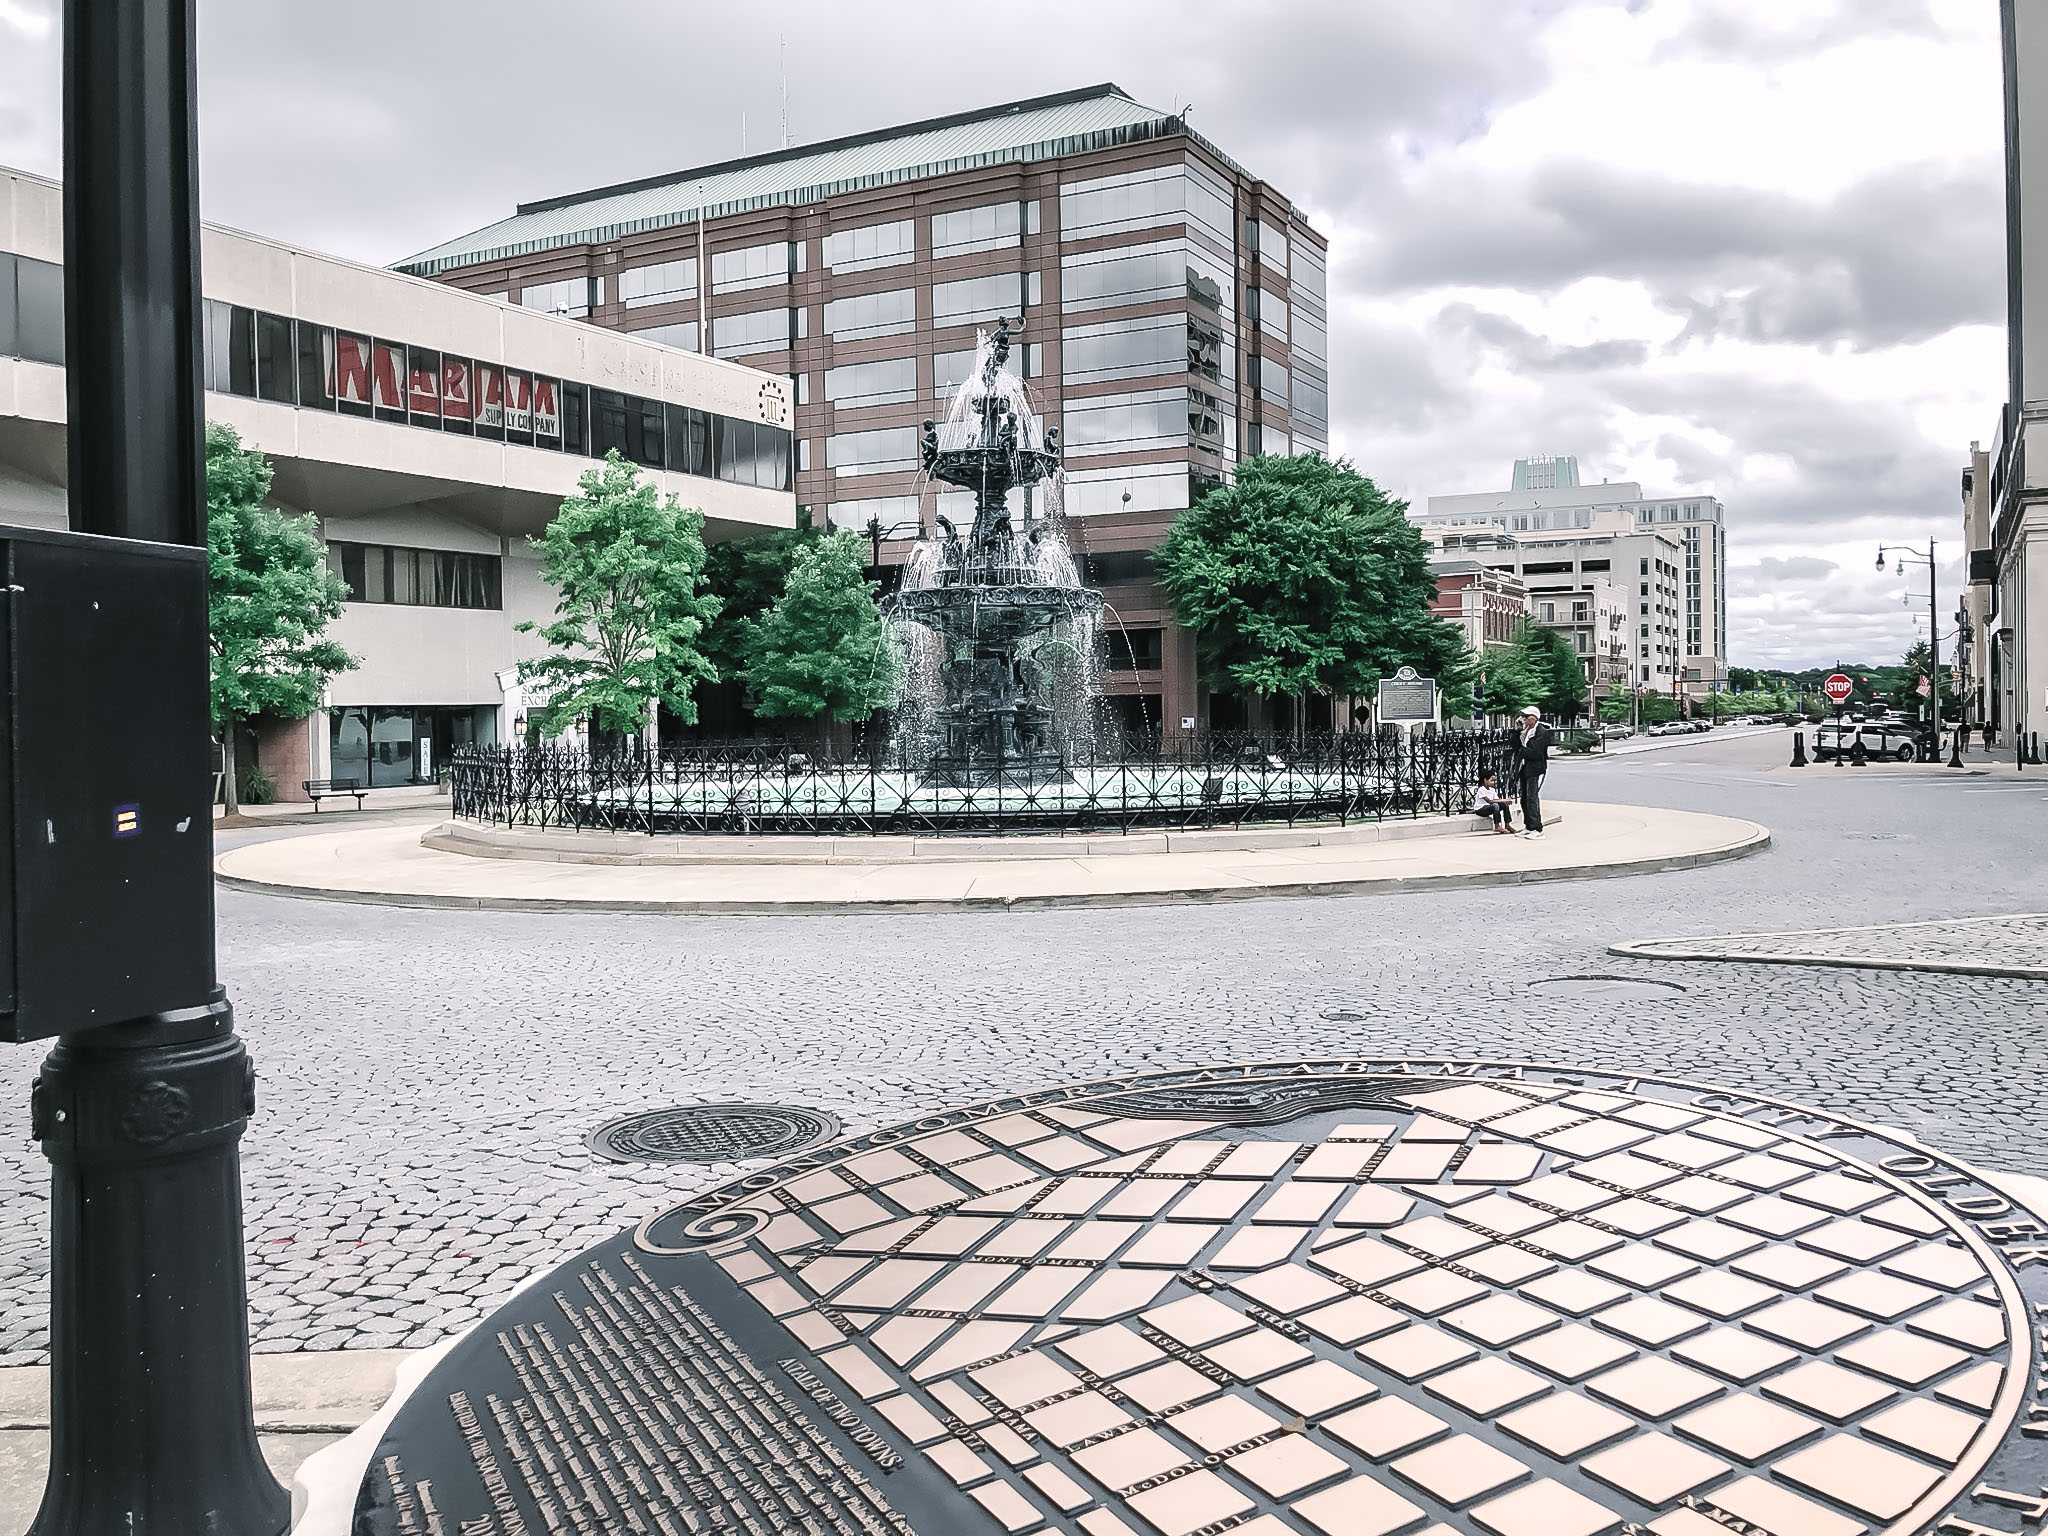 Court Square Fountain, built on an artesian well, originally used by the native tribes. The fountain was the center of the slave trade, where enslaved Africans (who had been kidnapped from their home countries) were chained together and paraded up the street to be sold at this fountain.